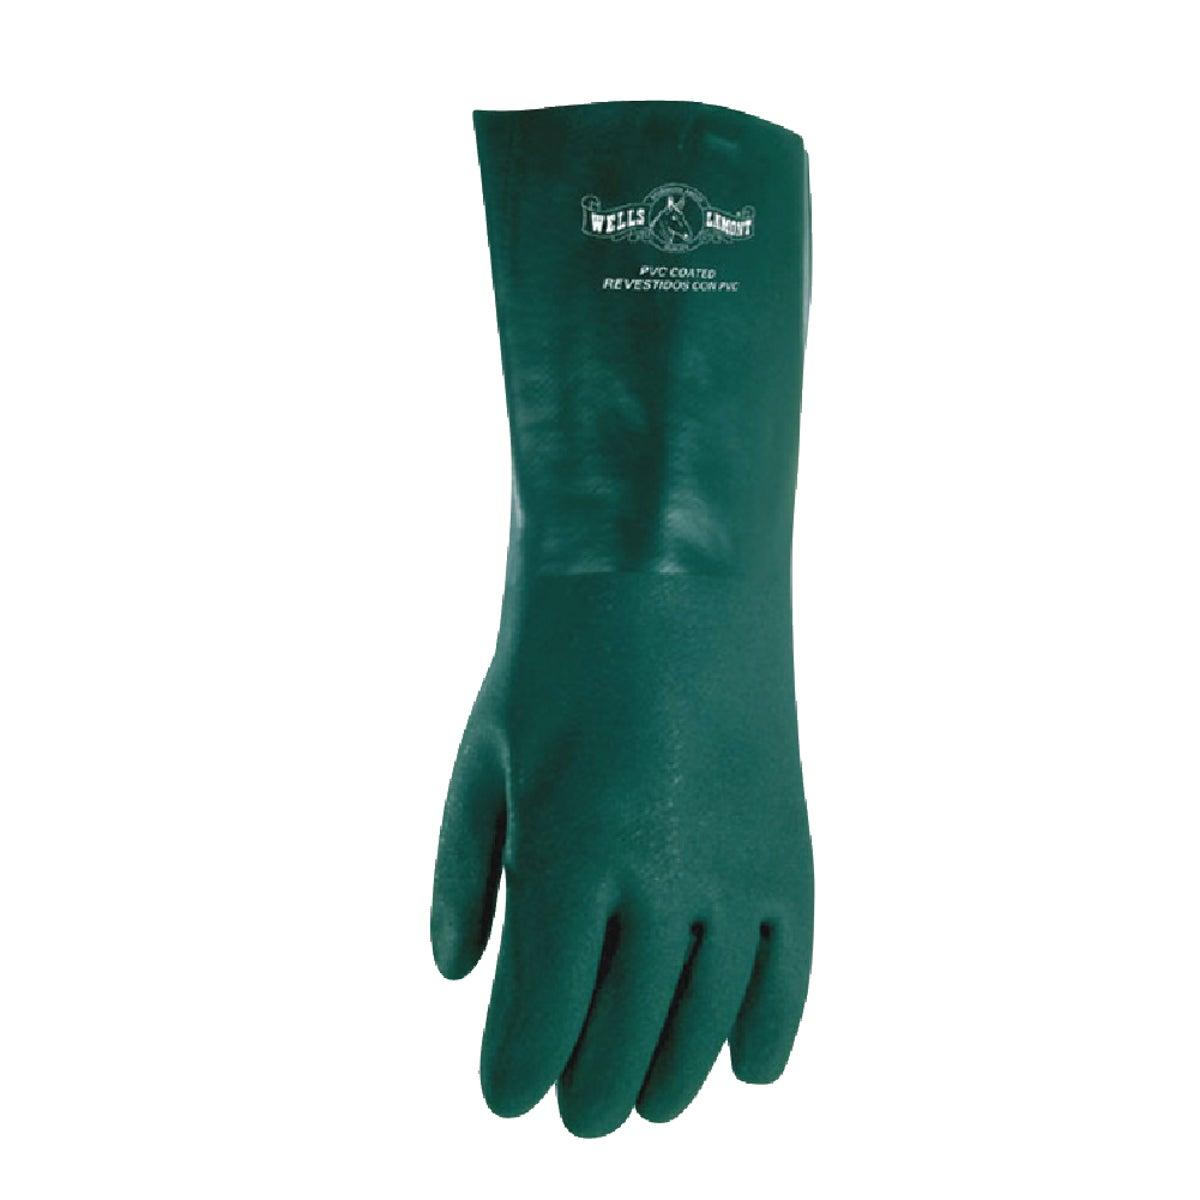 GREEN PVC COATED GLOVE